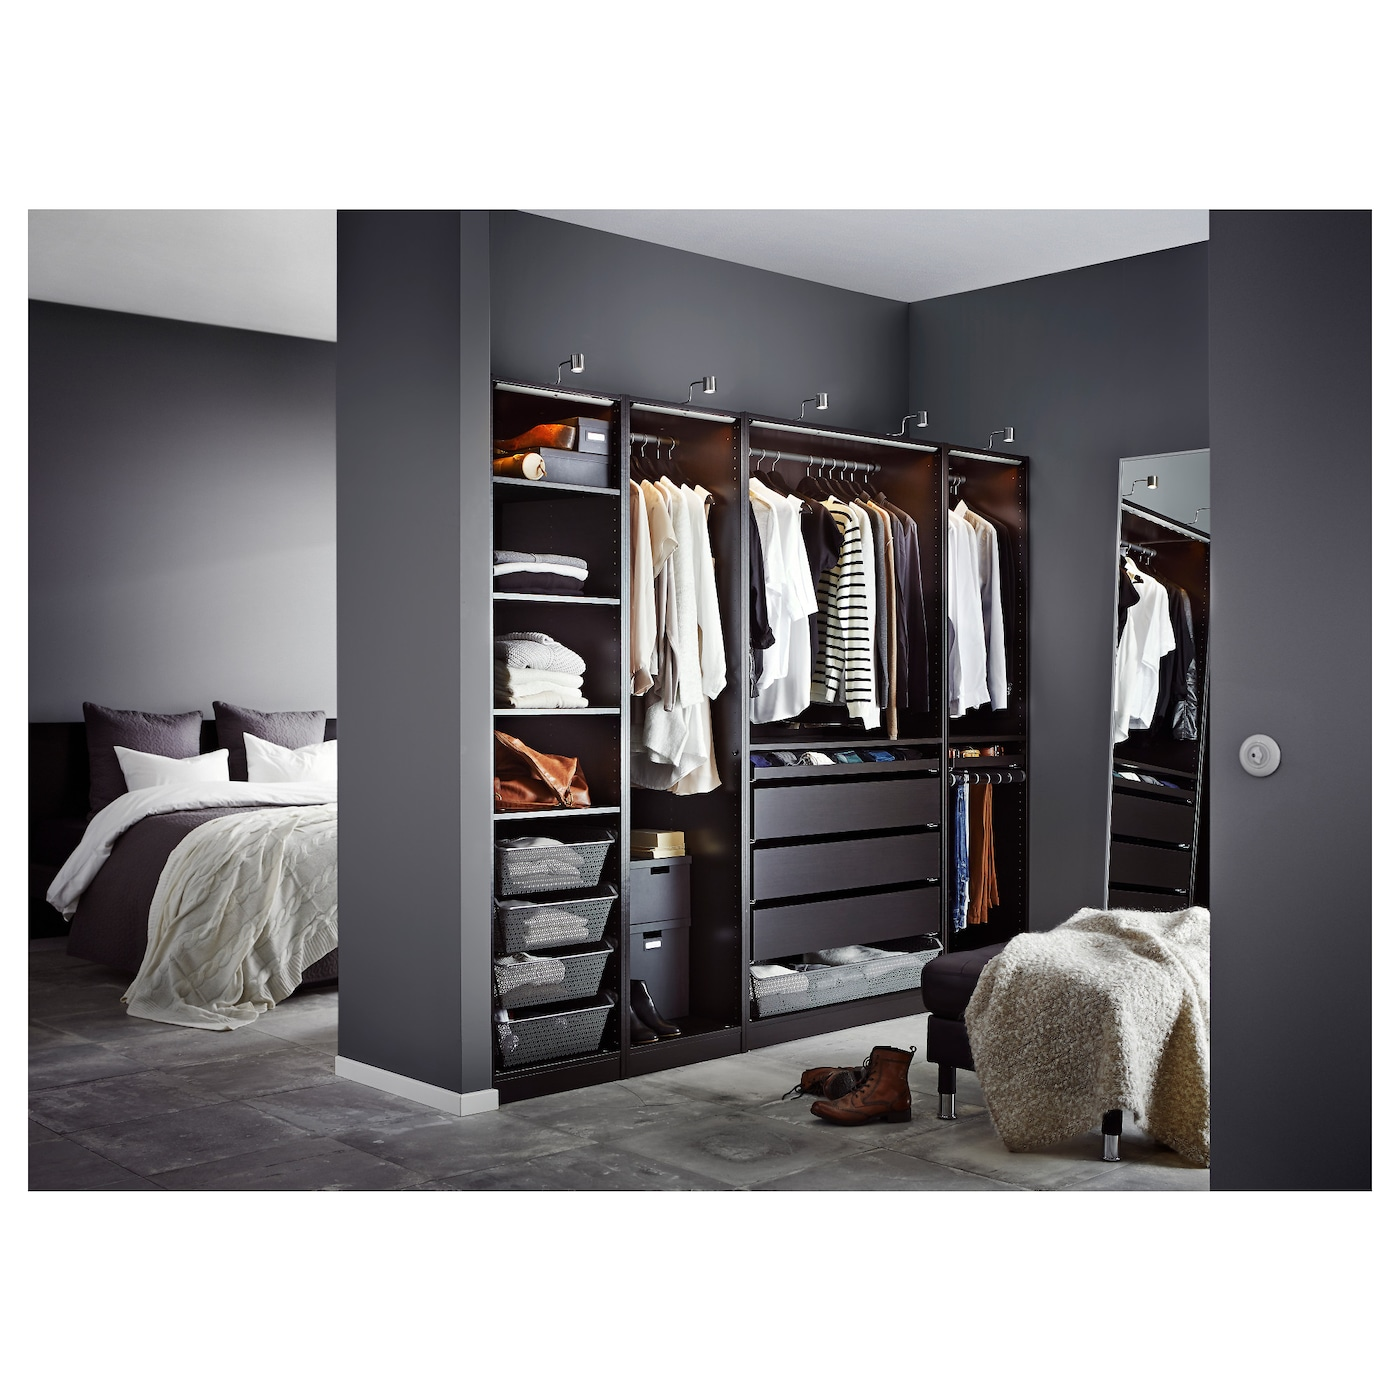 pax armoire penderie brun noir 250 x 58 x 201 cm ikea. Black Bedroom Furniture Sets. Home Design Ideas